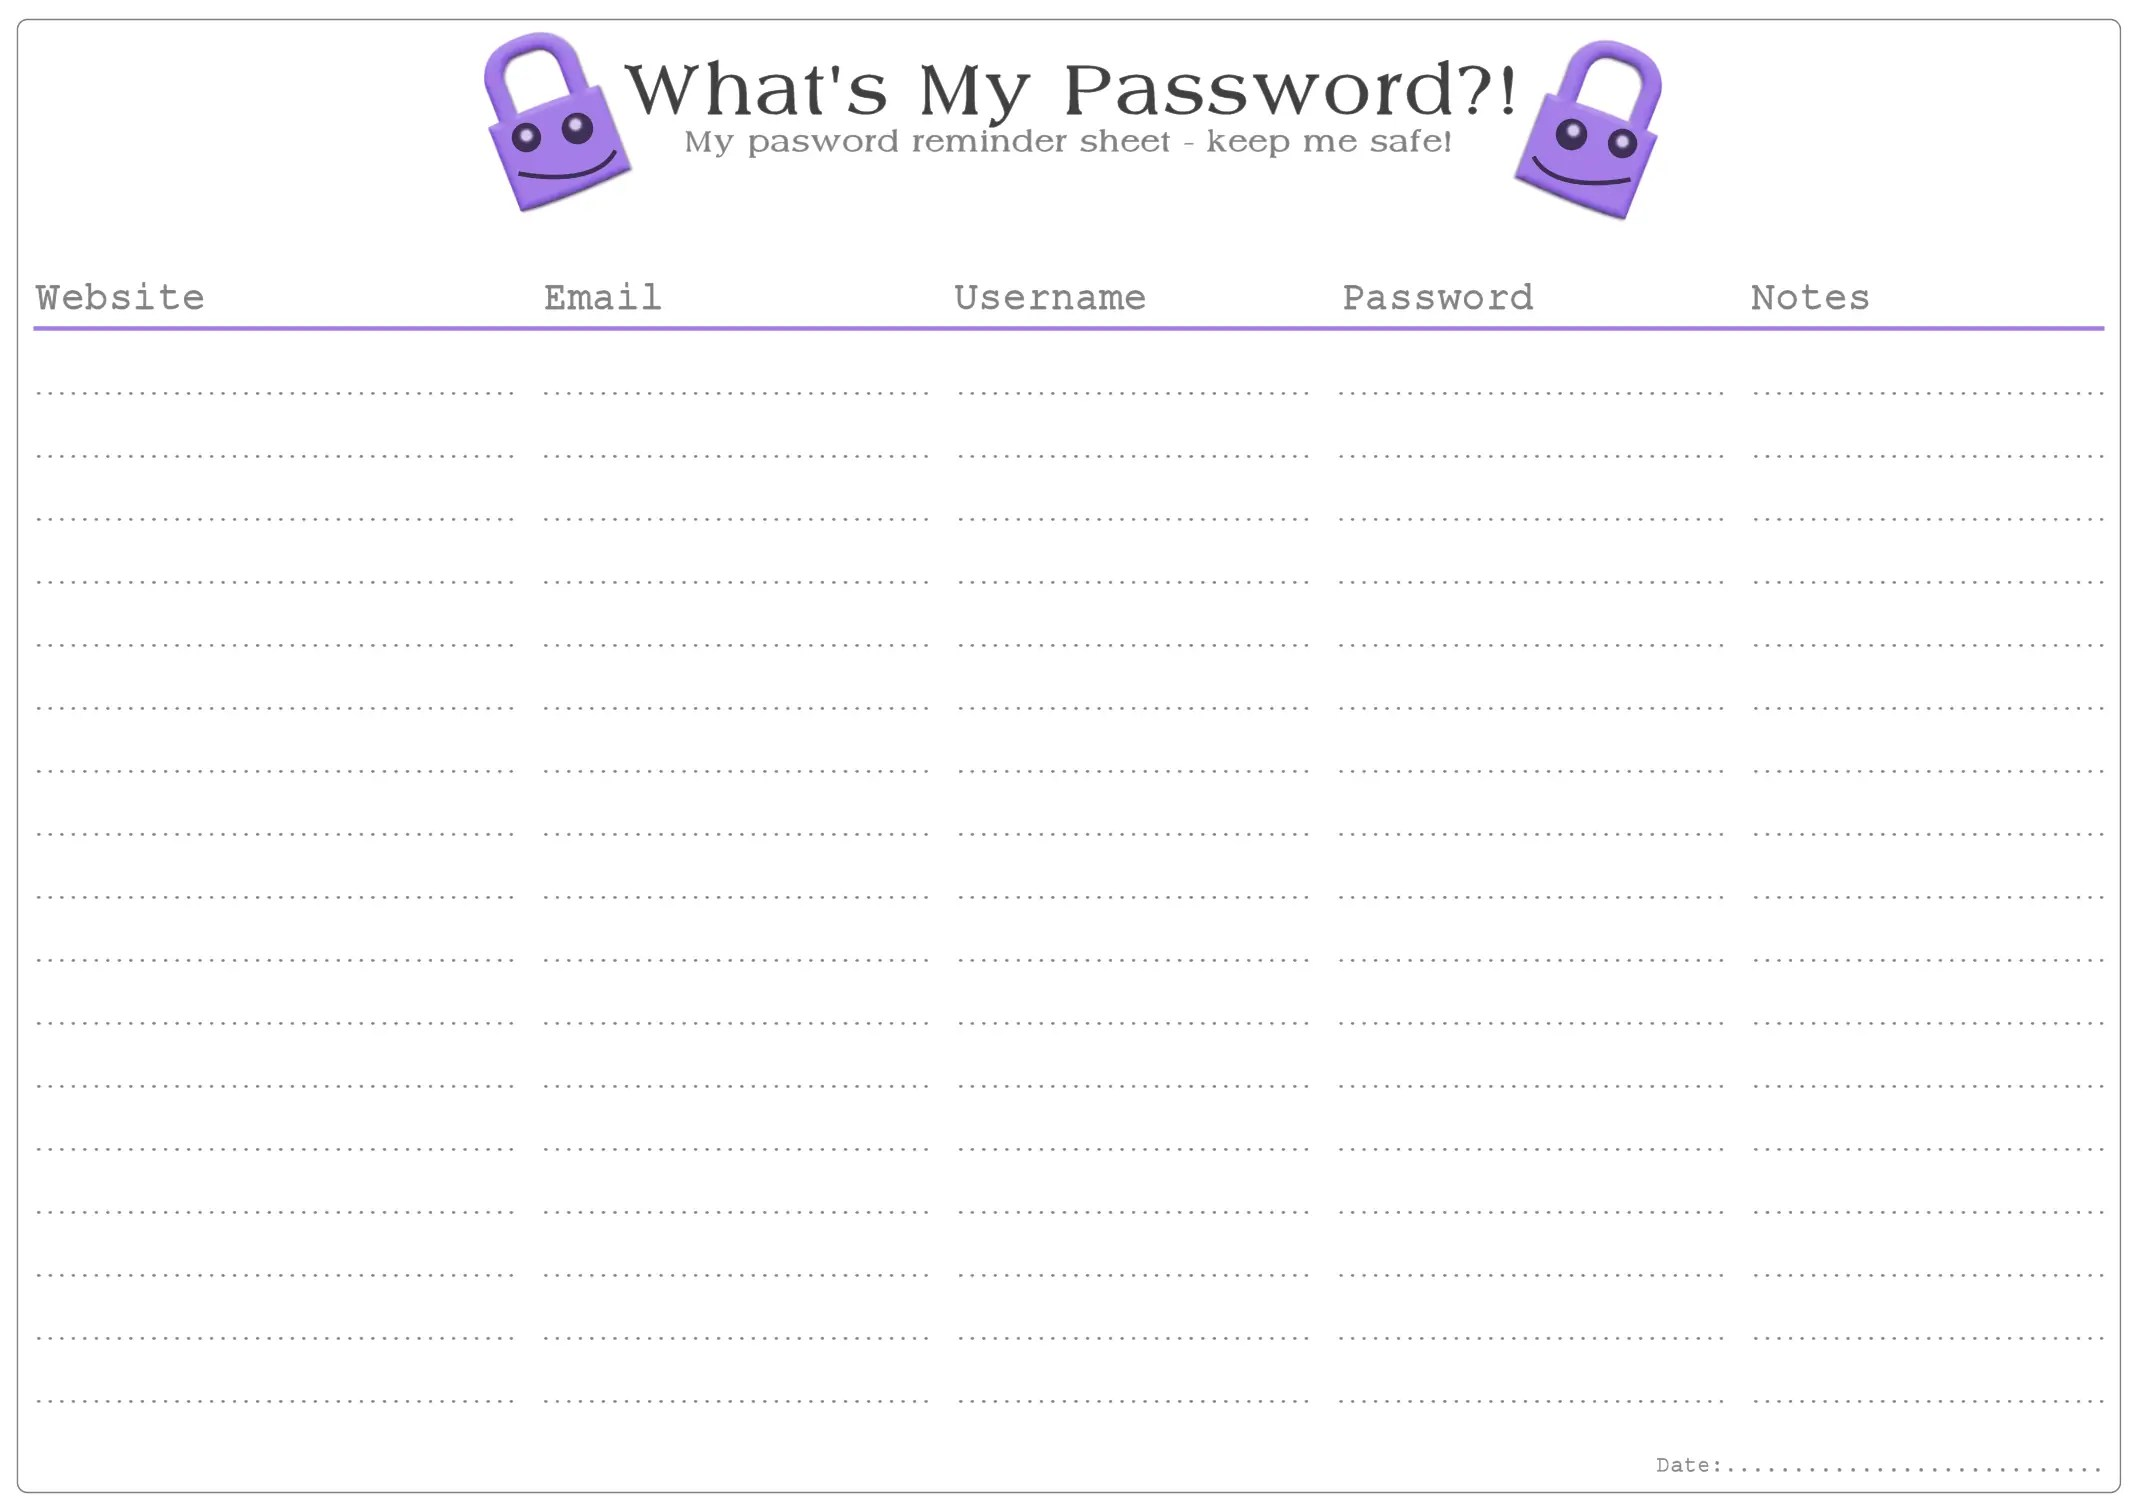 graphic regarding Password Printable identified as Whats My Pword?! Reminder Sheet - No cost Printable